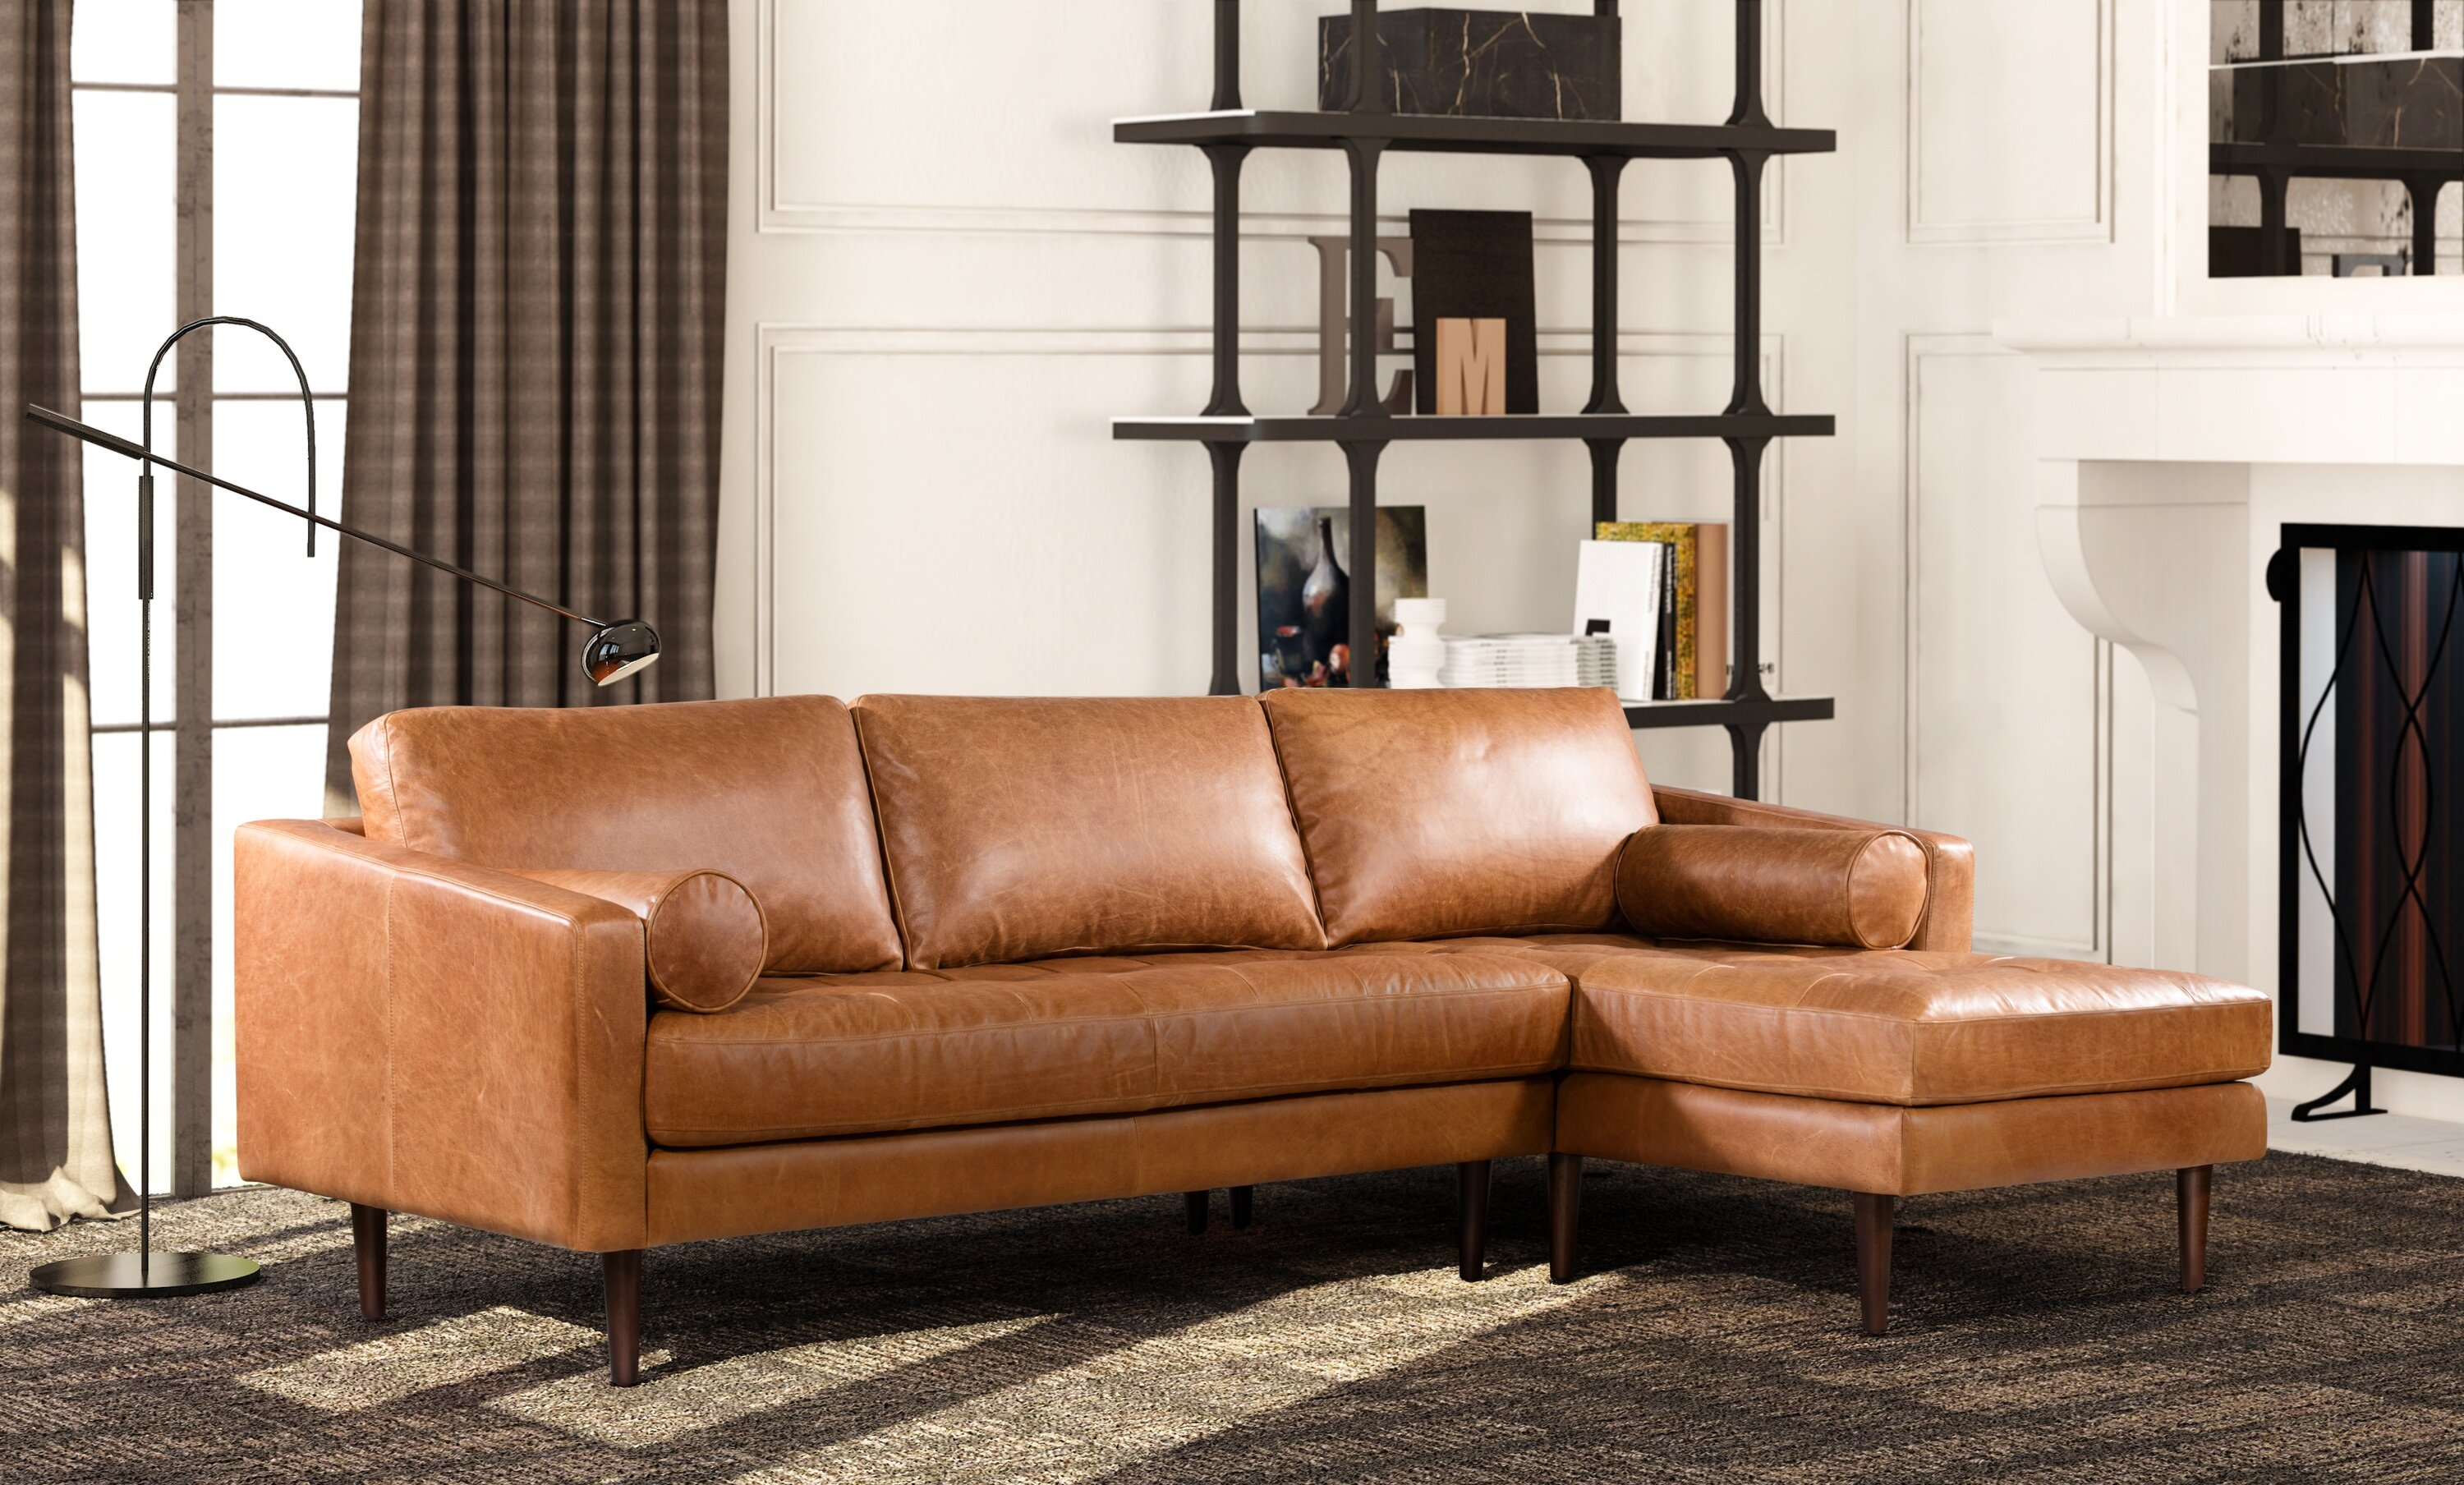 Wondrous Foundry Select Kate Leather Sectional Reviews Wayfair Pabps2019 Chair Design Images Pabps2019Com